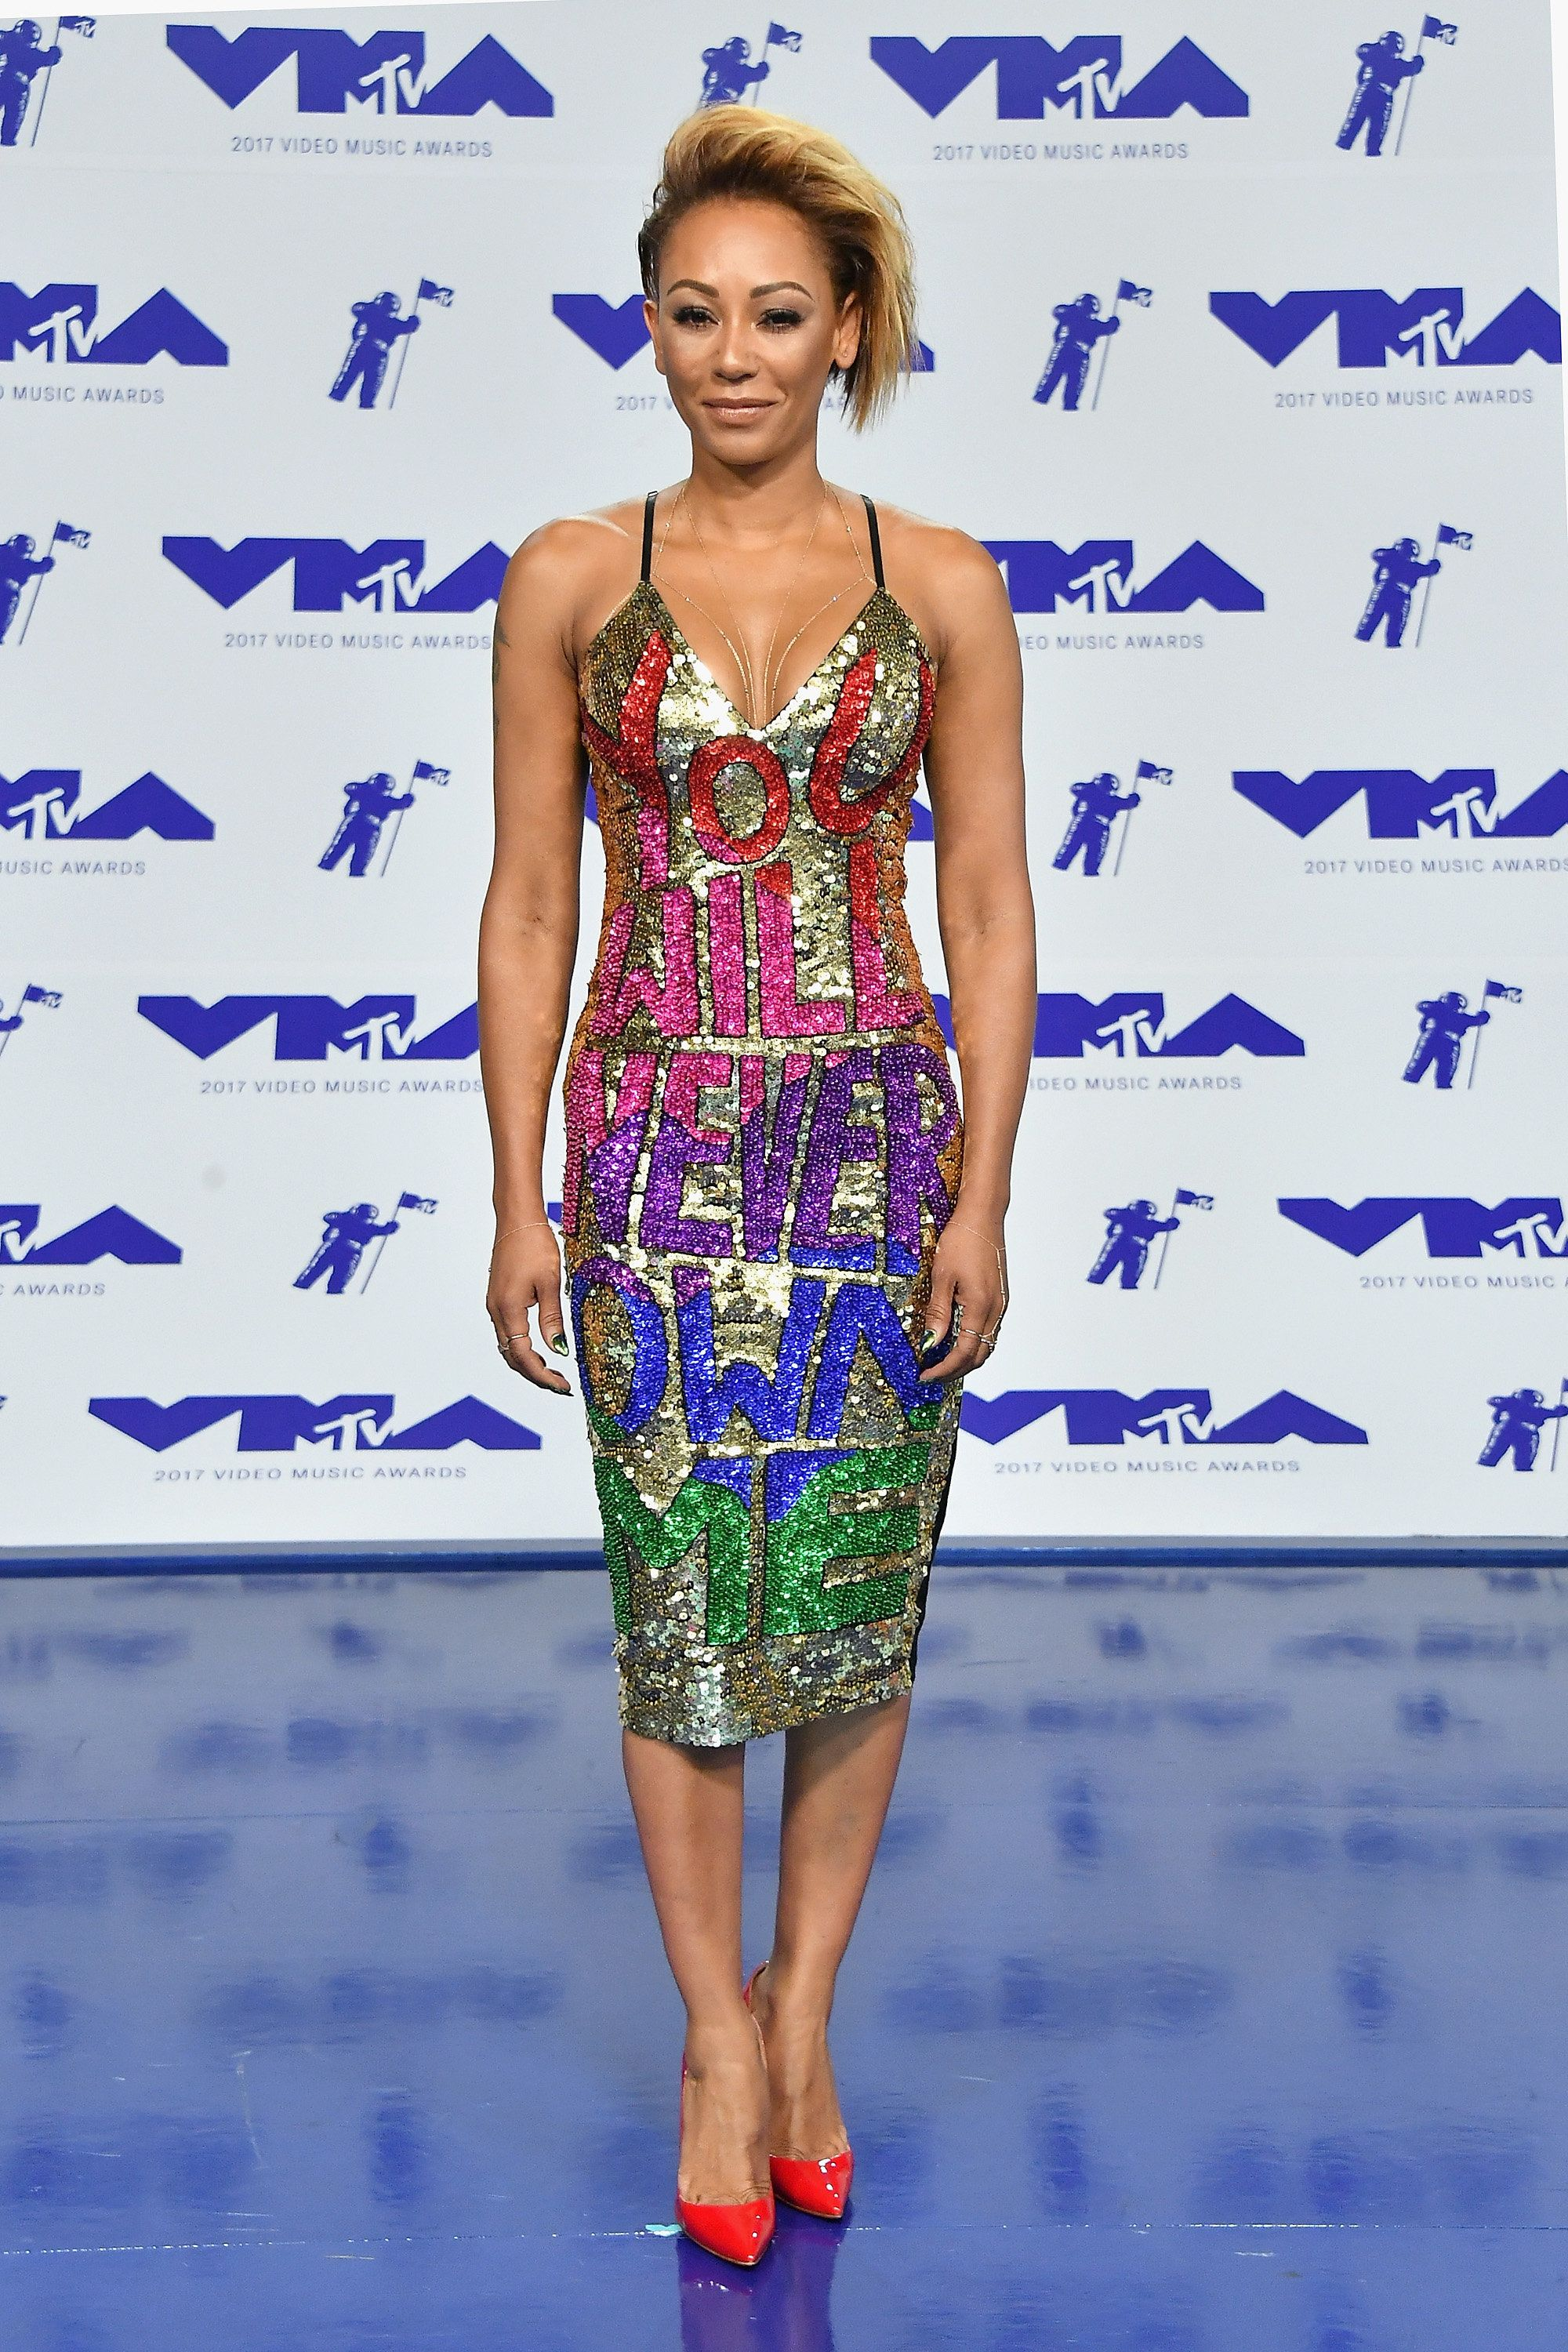 Mel B Makes Very Public Statement With Her VMAs